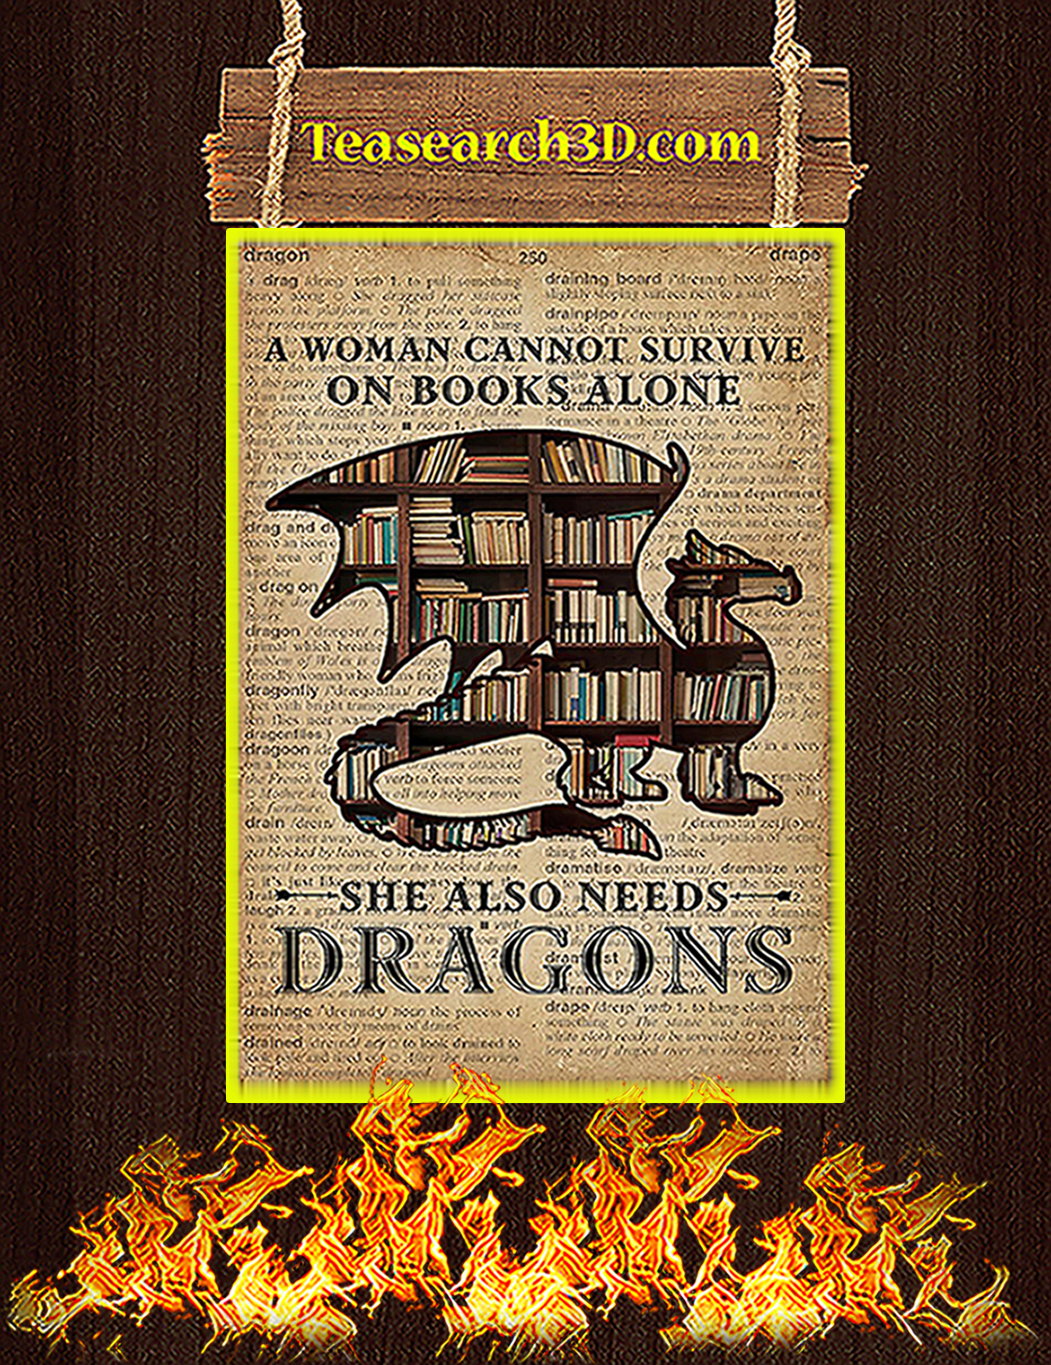 A woman cannot survive on books alone she also needs dragons poster A1